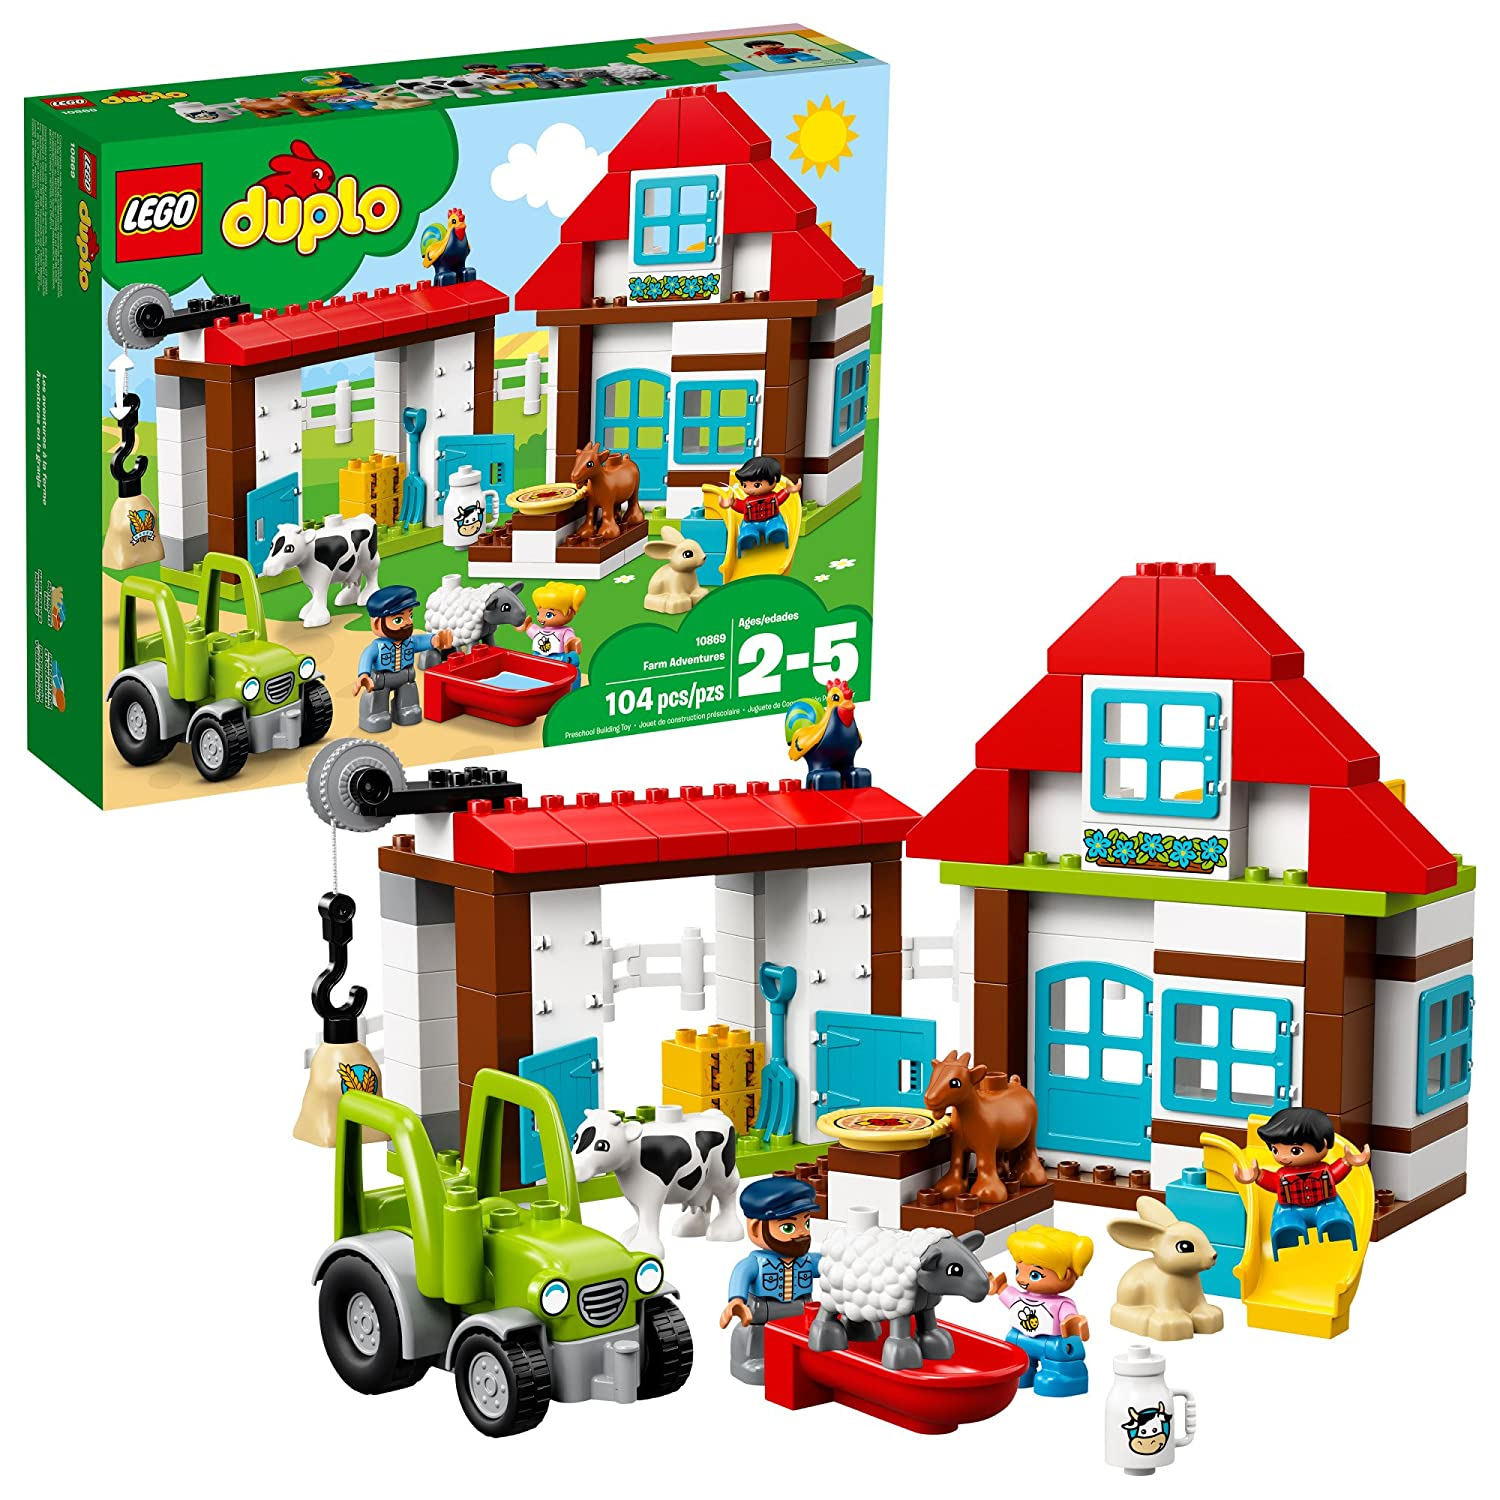 Top 9 Best Lego Duplo Sets Reviews in 2019 5